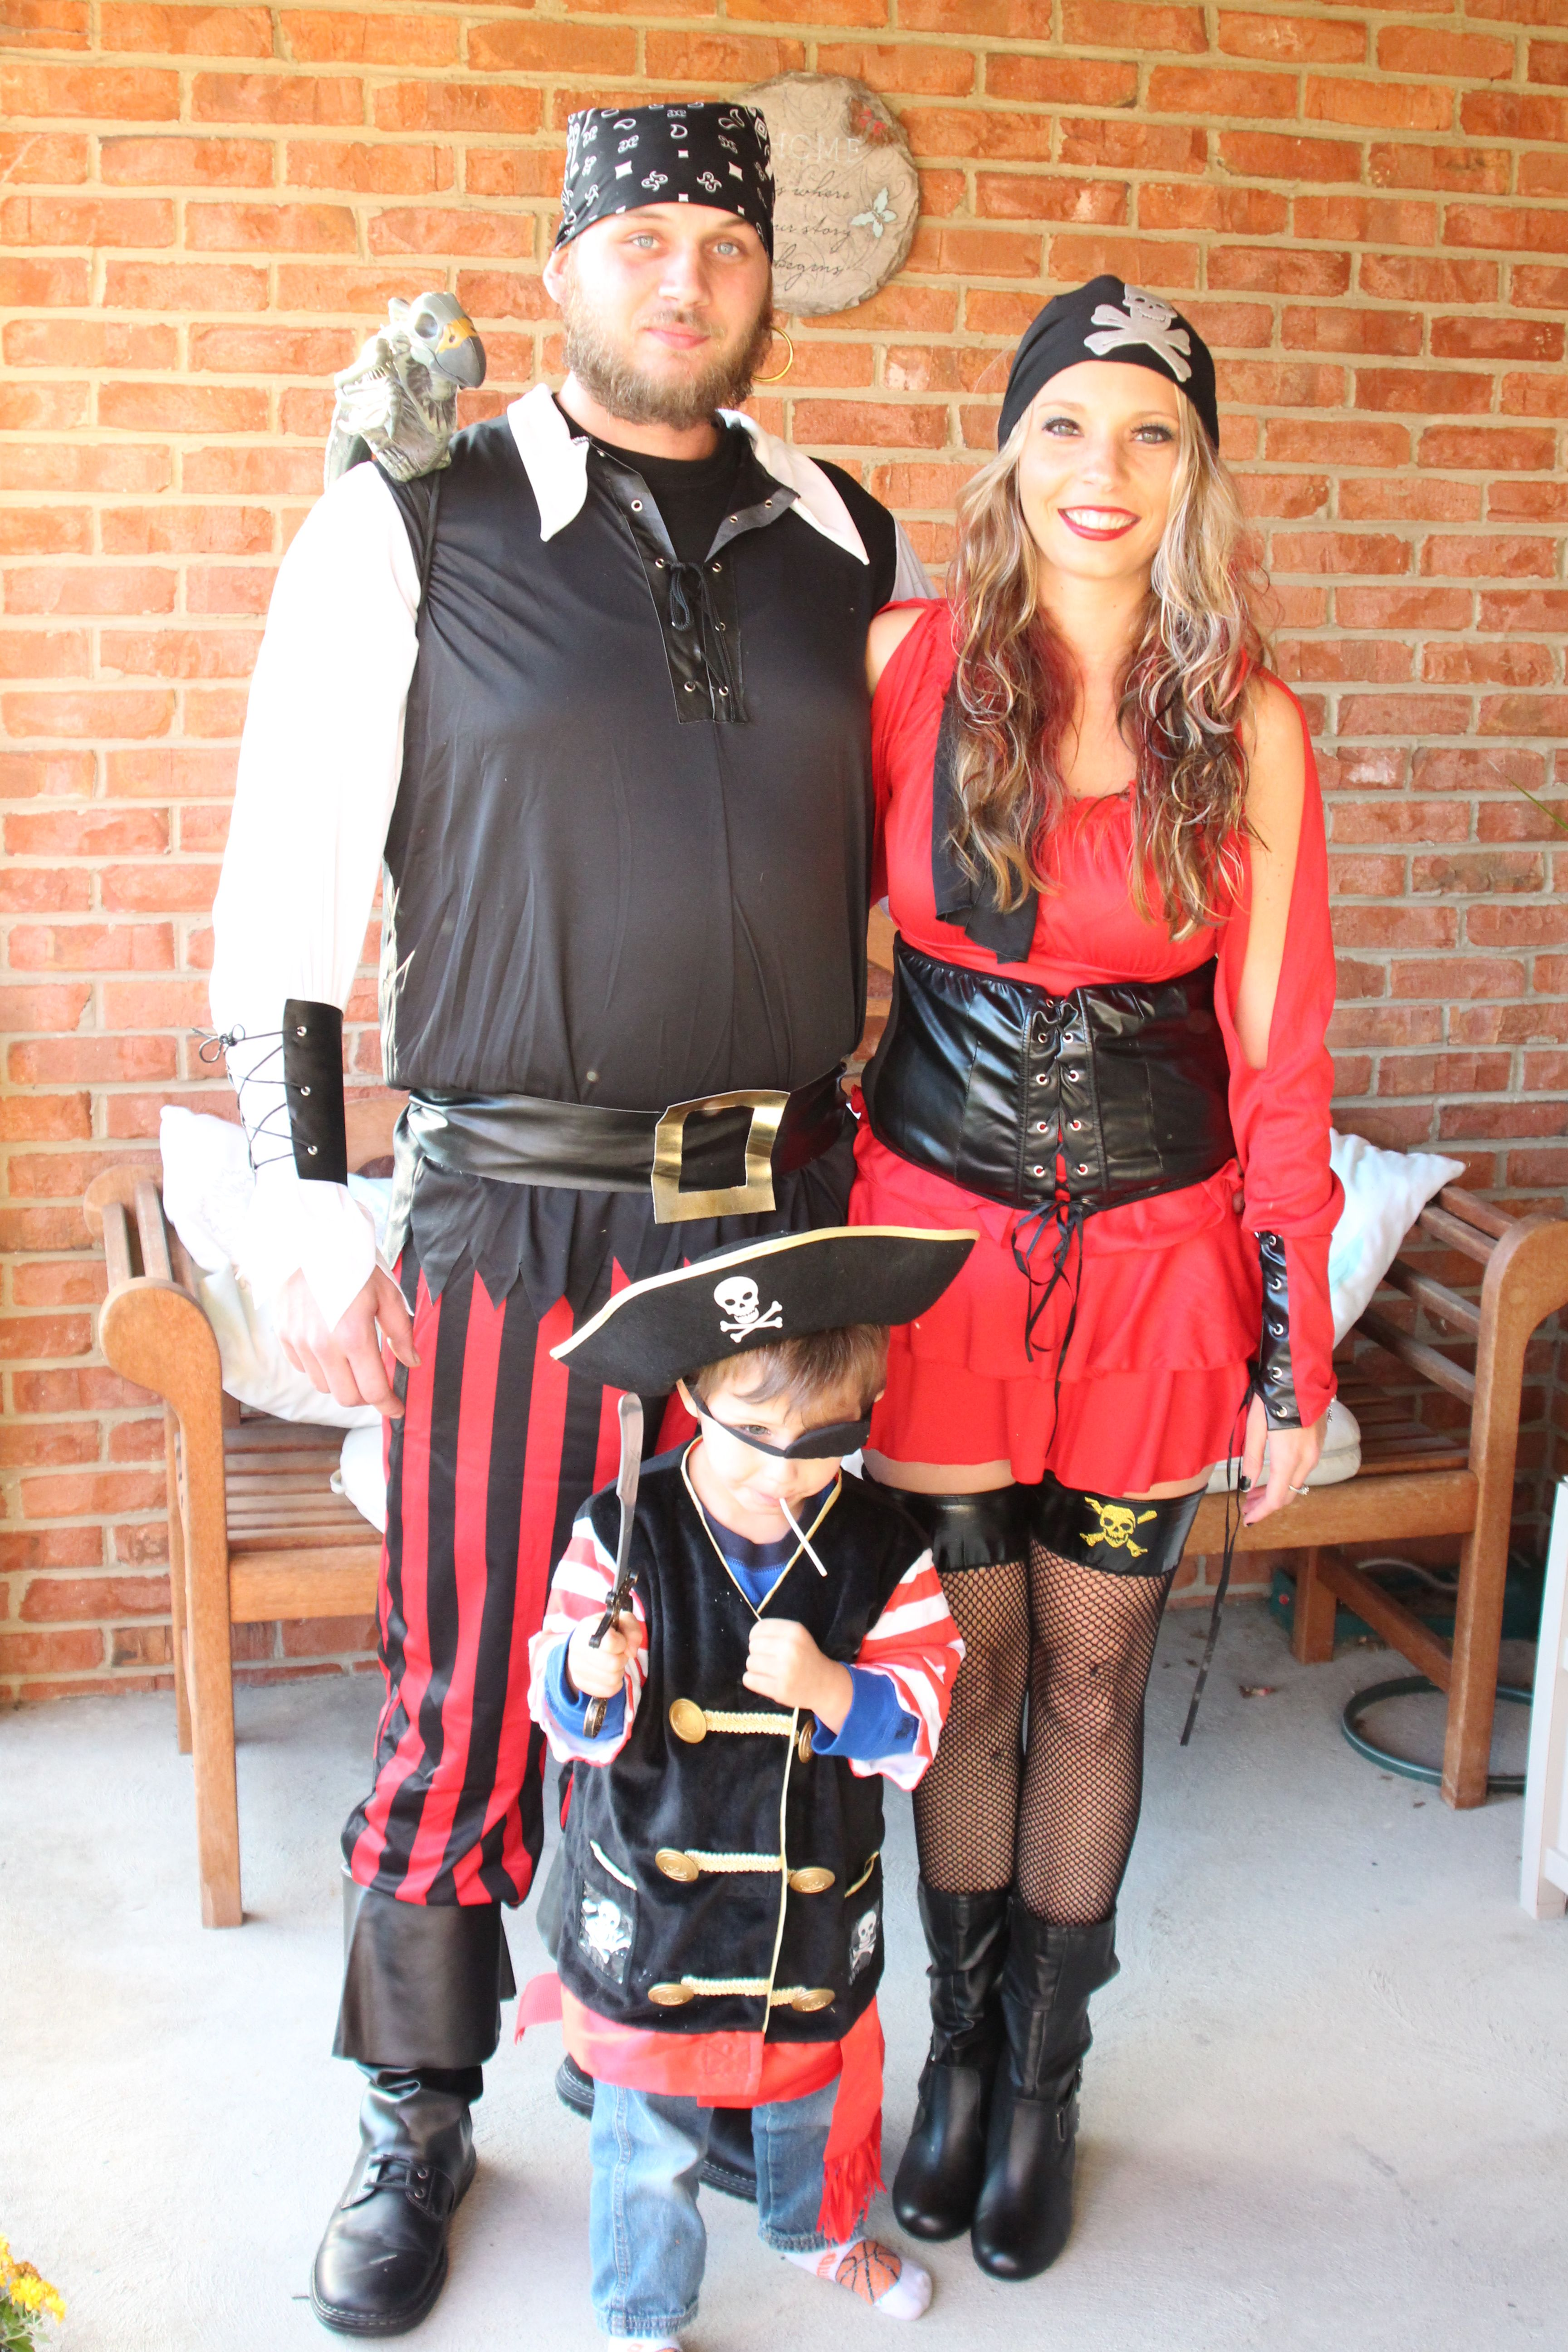 Pirate family costumes... | Just cool stuff... | Pinterest ...